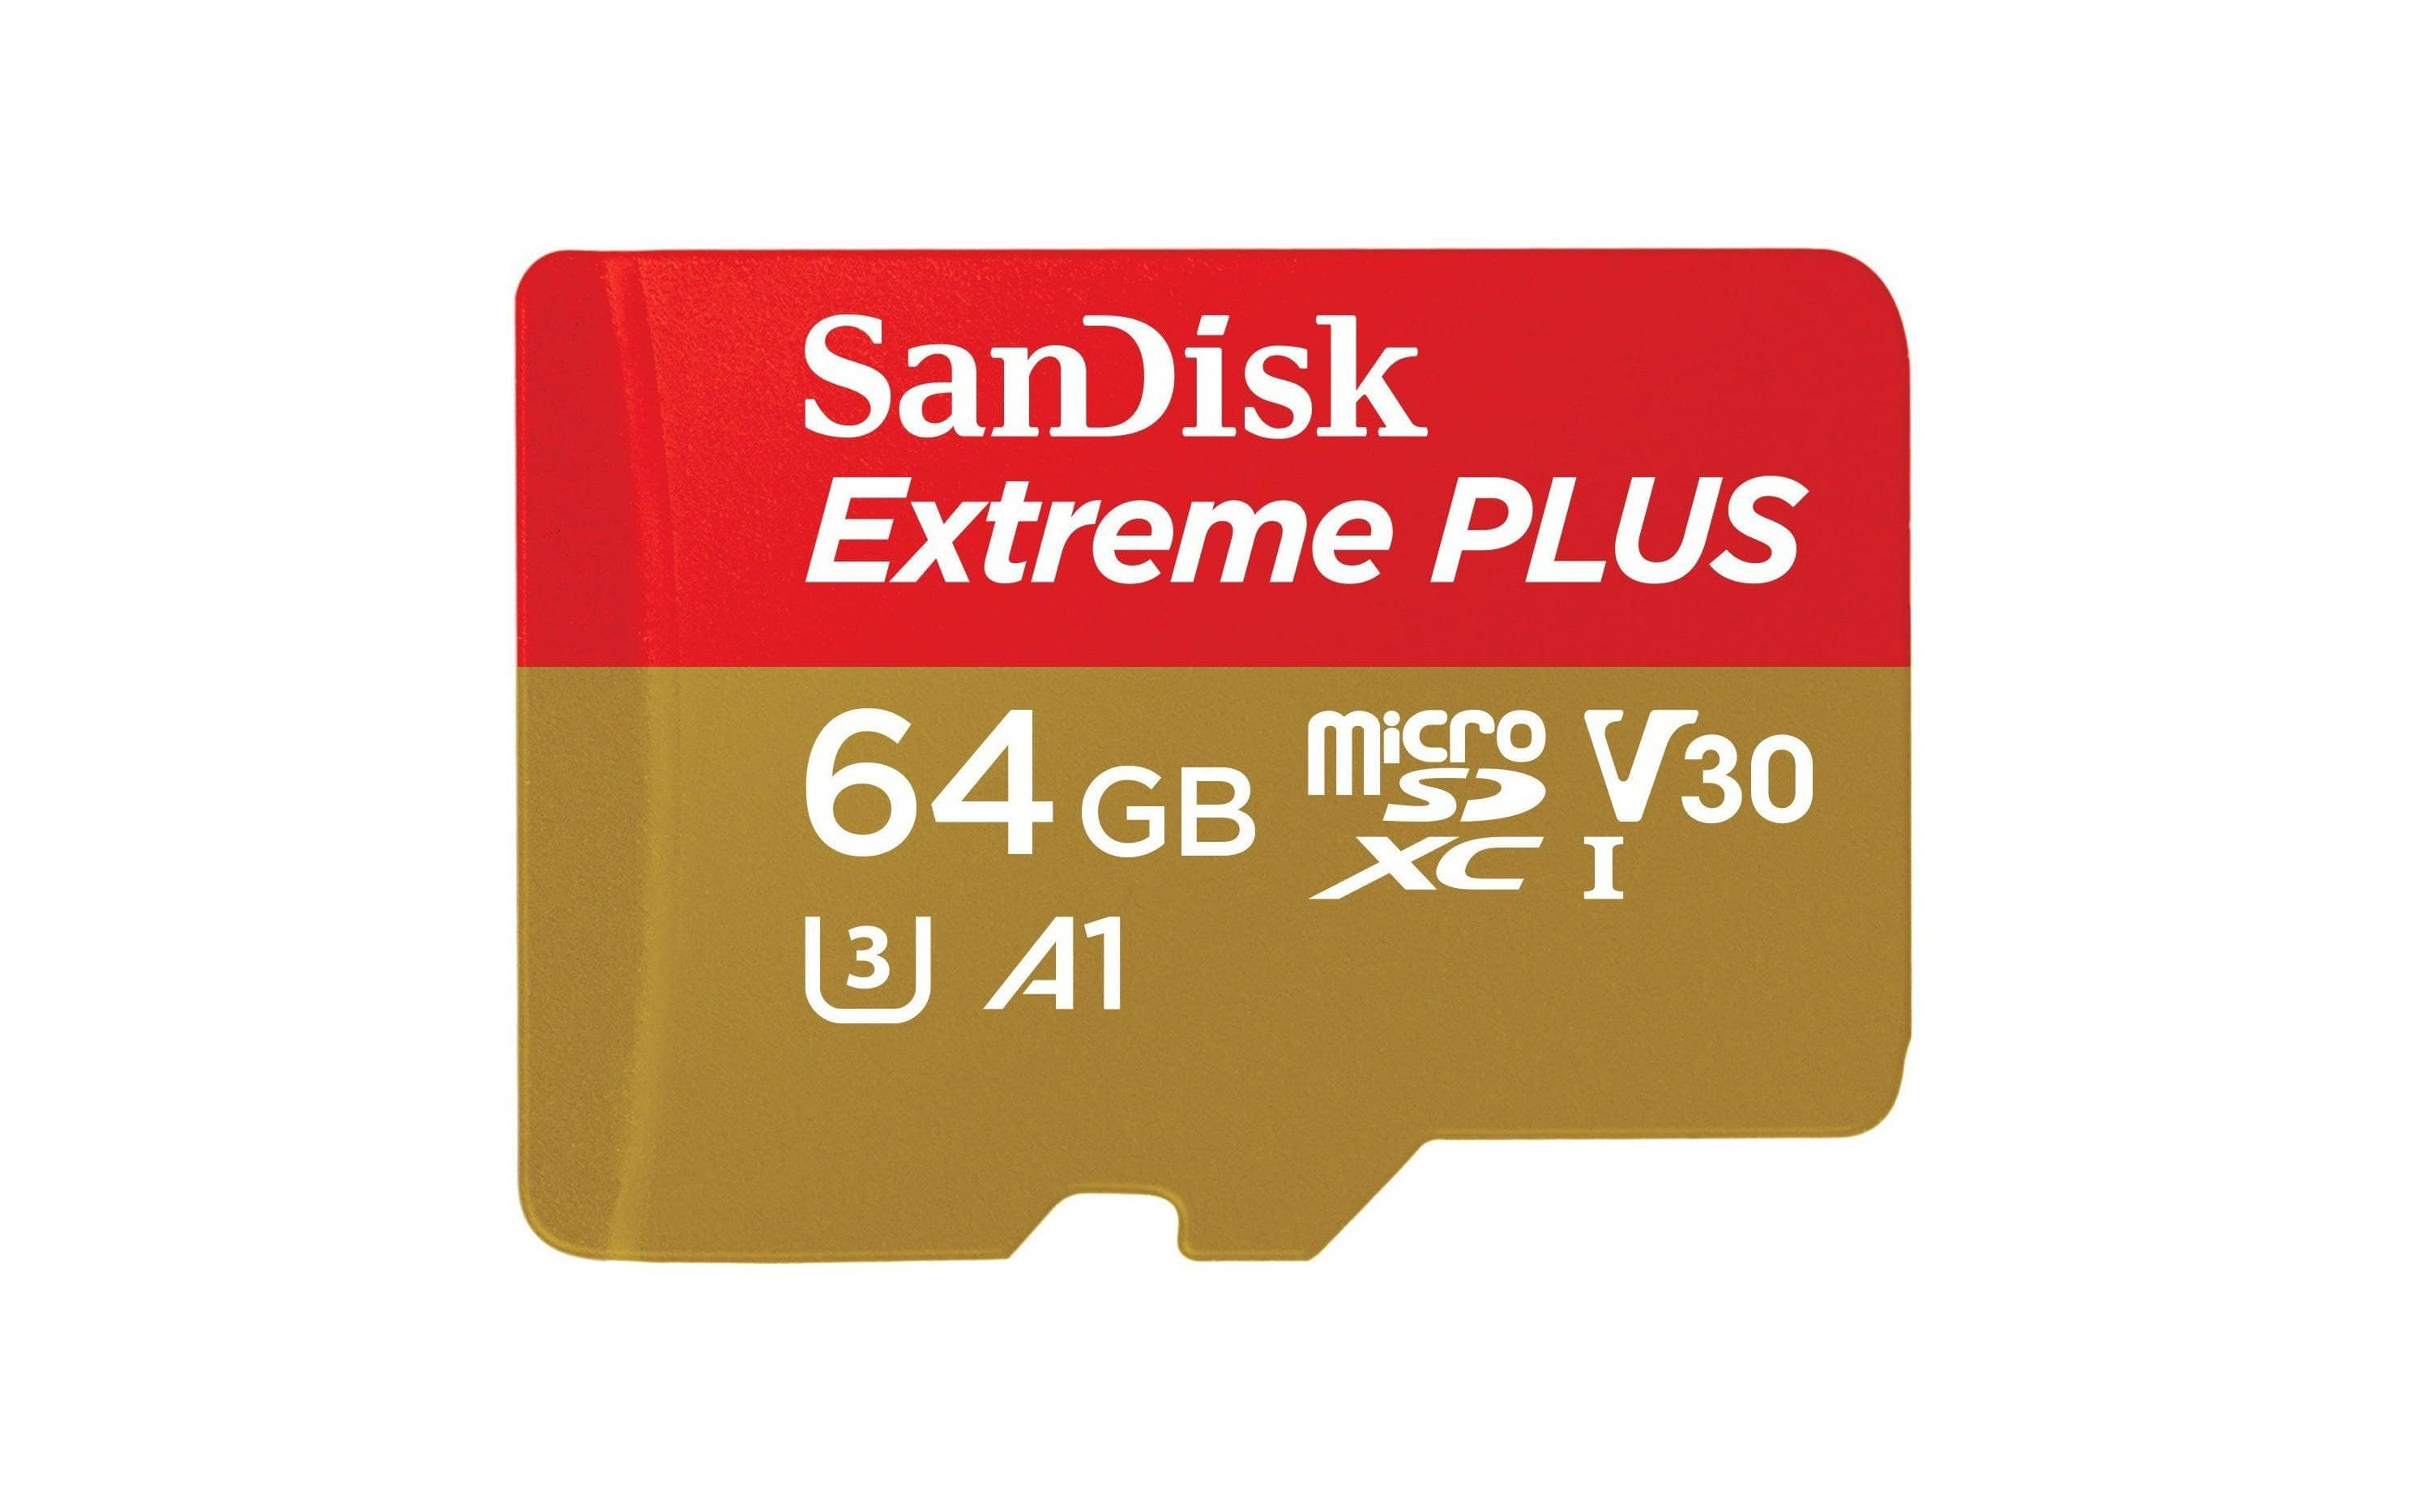 SanDisk 64GB Extreme Plus Memory Card $32.99